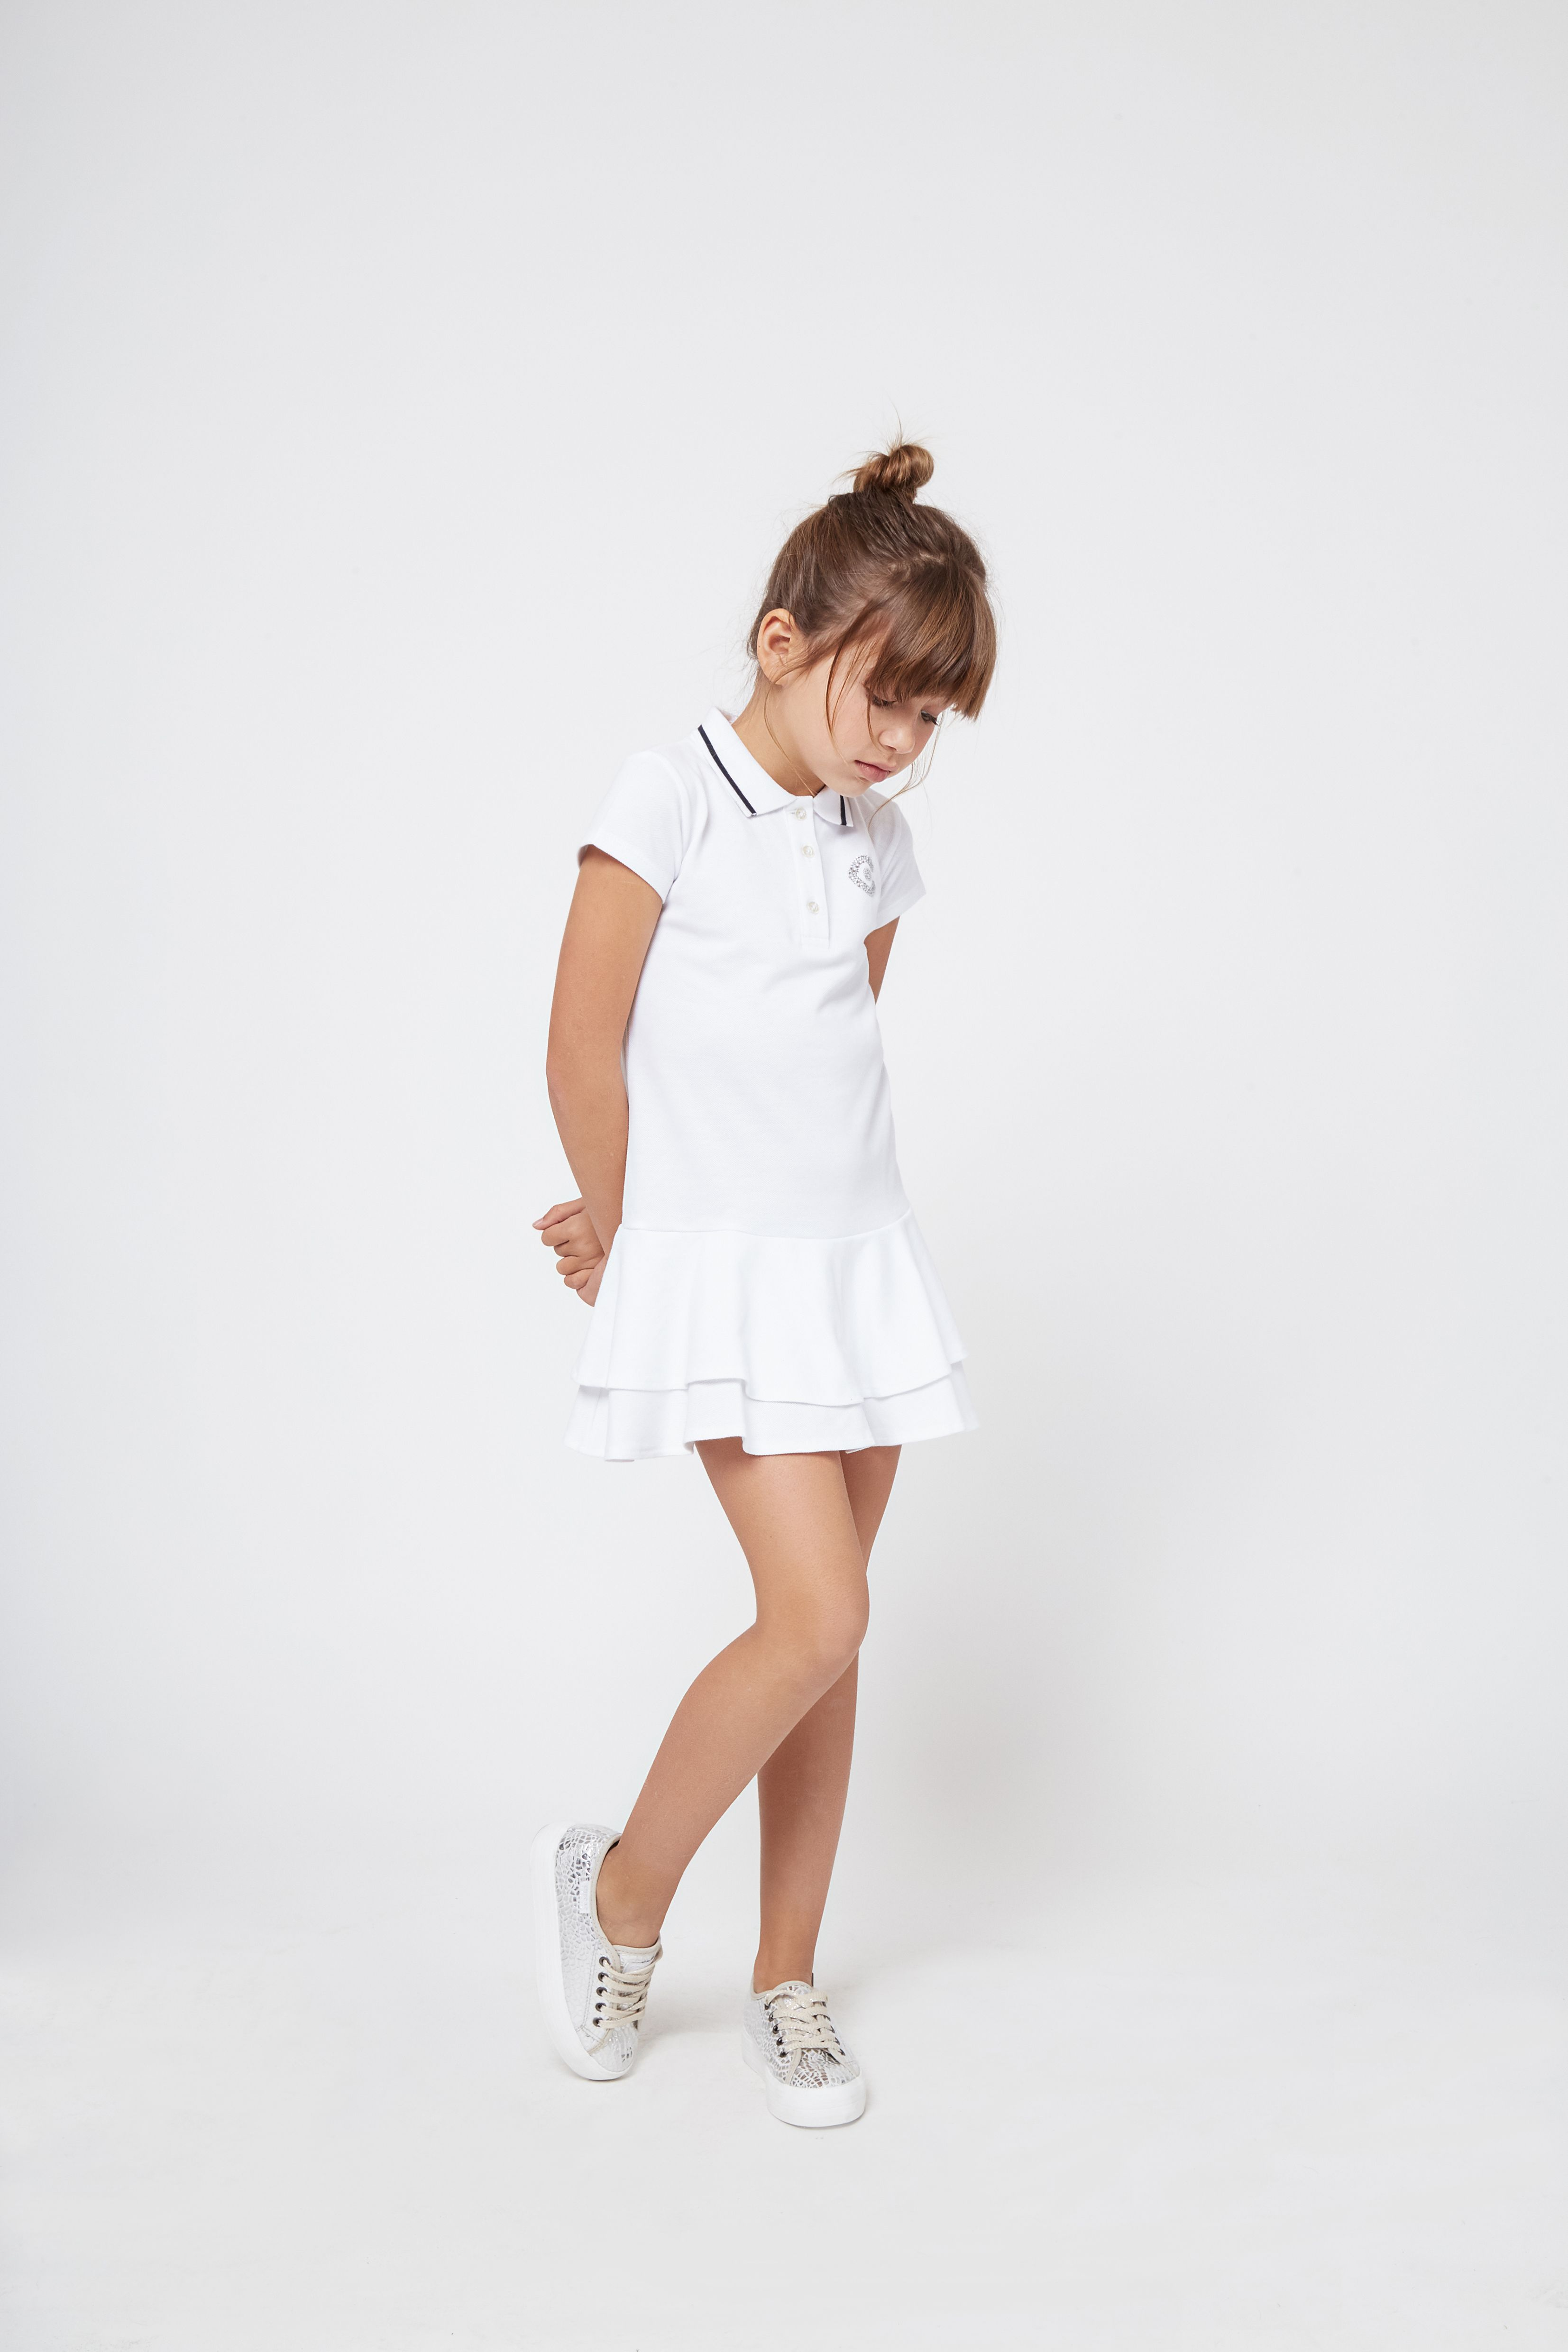 10b6aa0d84056 Vestido de Niña Polo Blanco Volante - Moda - Niña - Conguitos  kidsfashion   dress